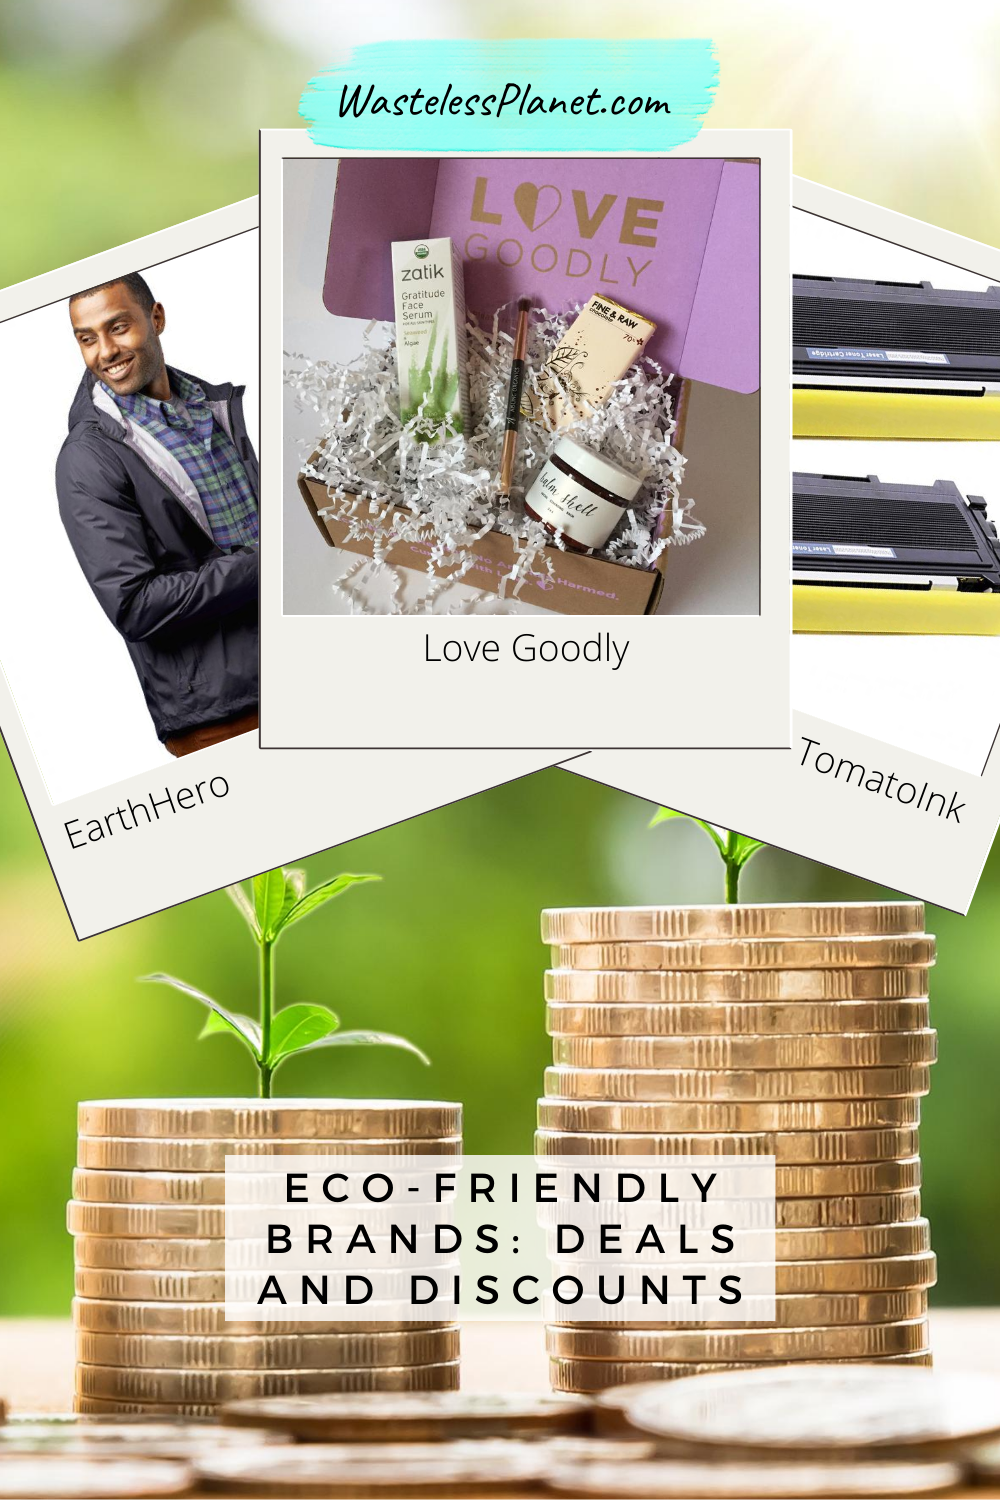 Eco-friendly brands: deals and discounts